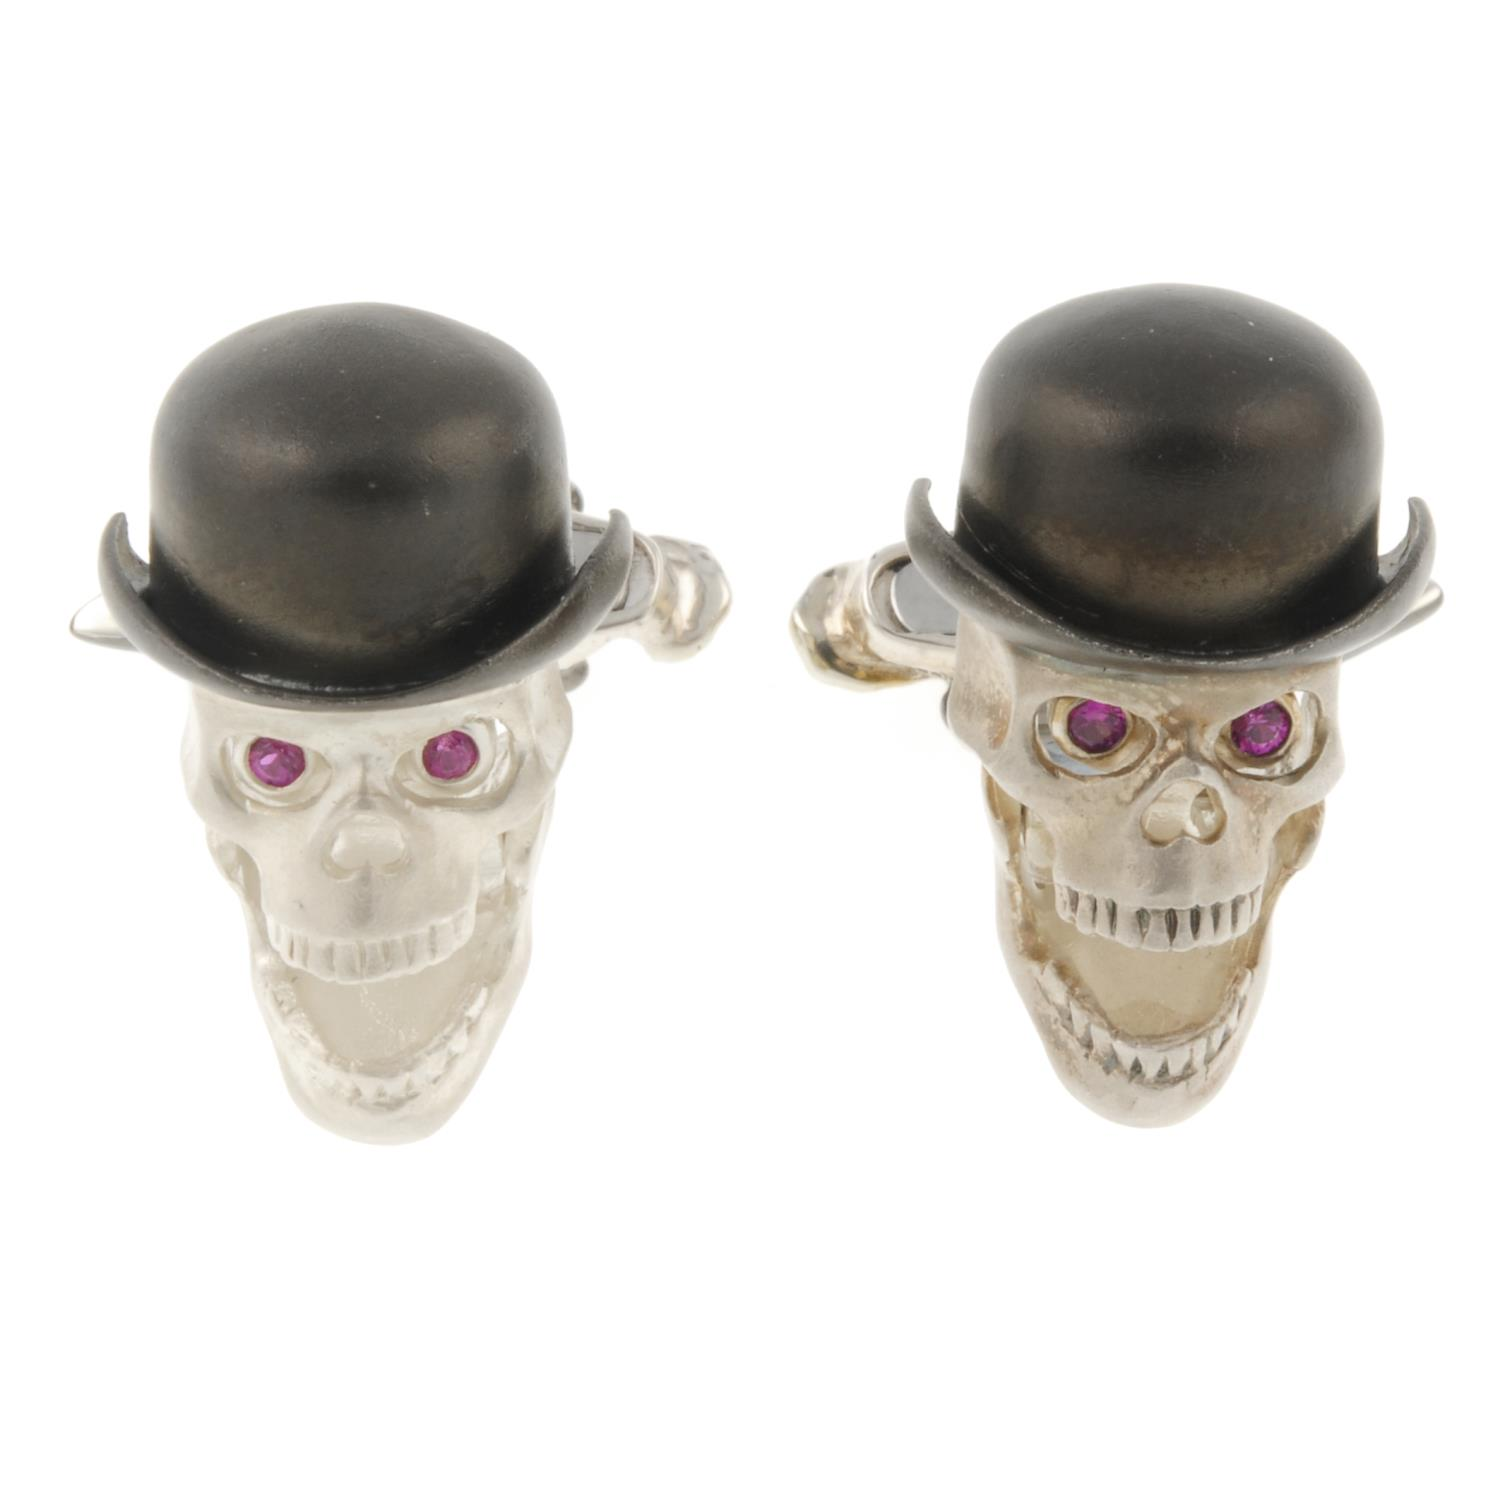 A pair of silver skull cufflinks, with articulated jaw and ruby eyes, by Deakin and Francis.